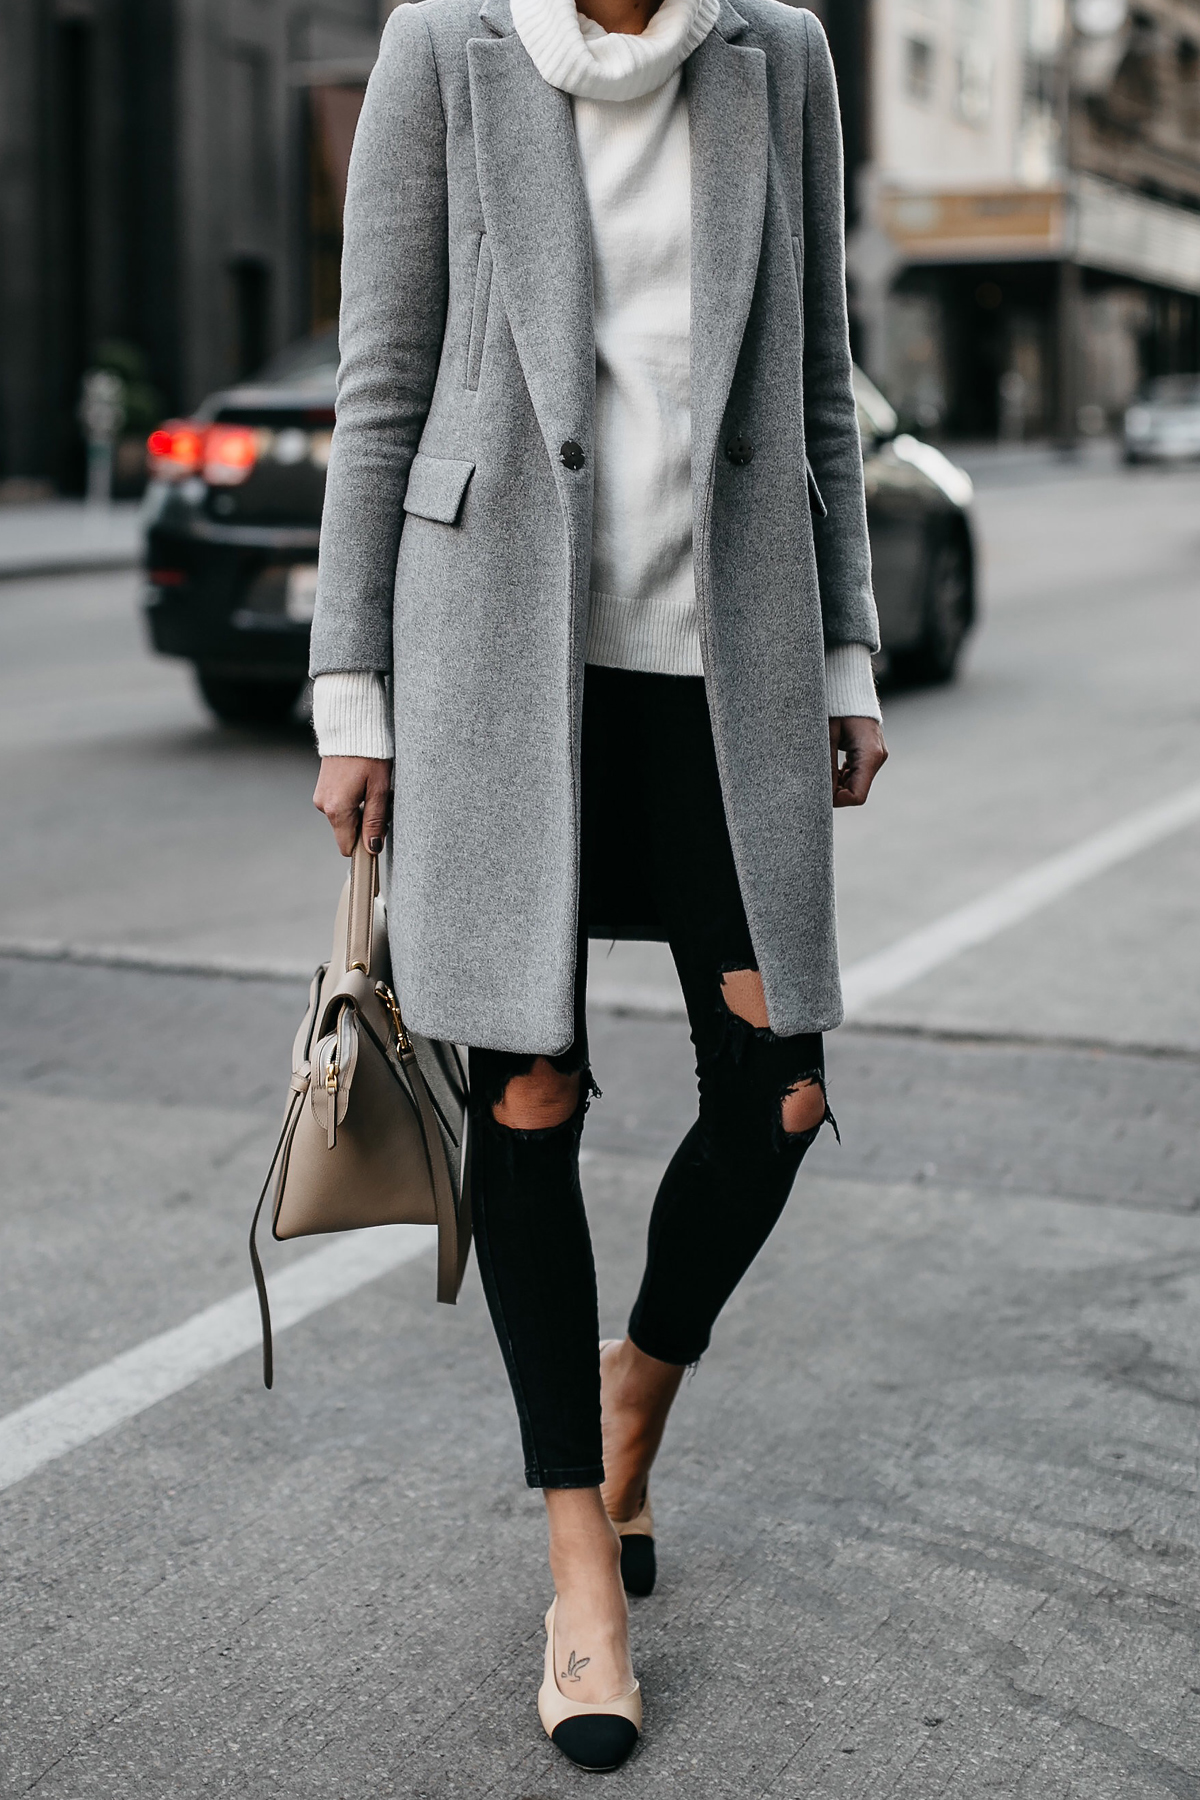 A WINTER WHITE SWEATER TO WEAR THIS SEASON | Fashion Jackson